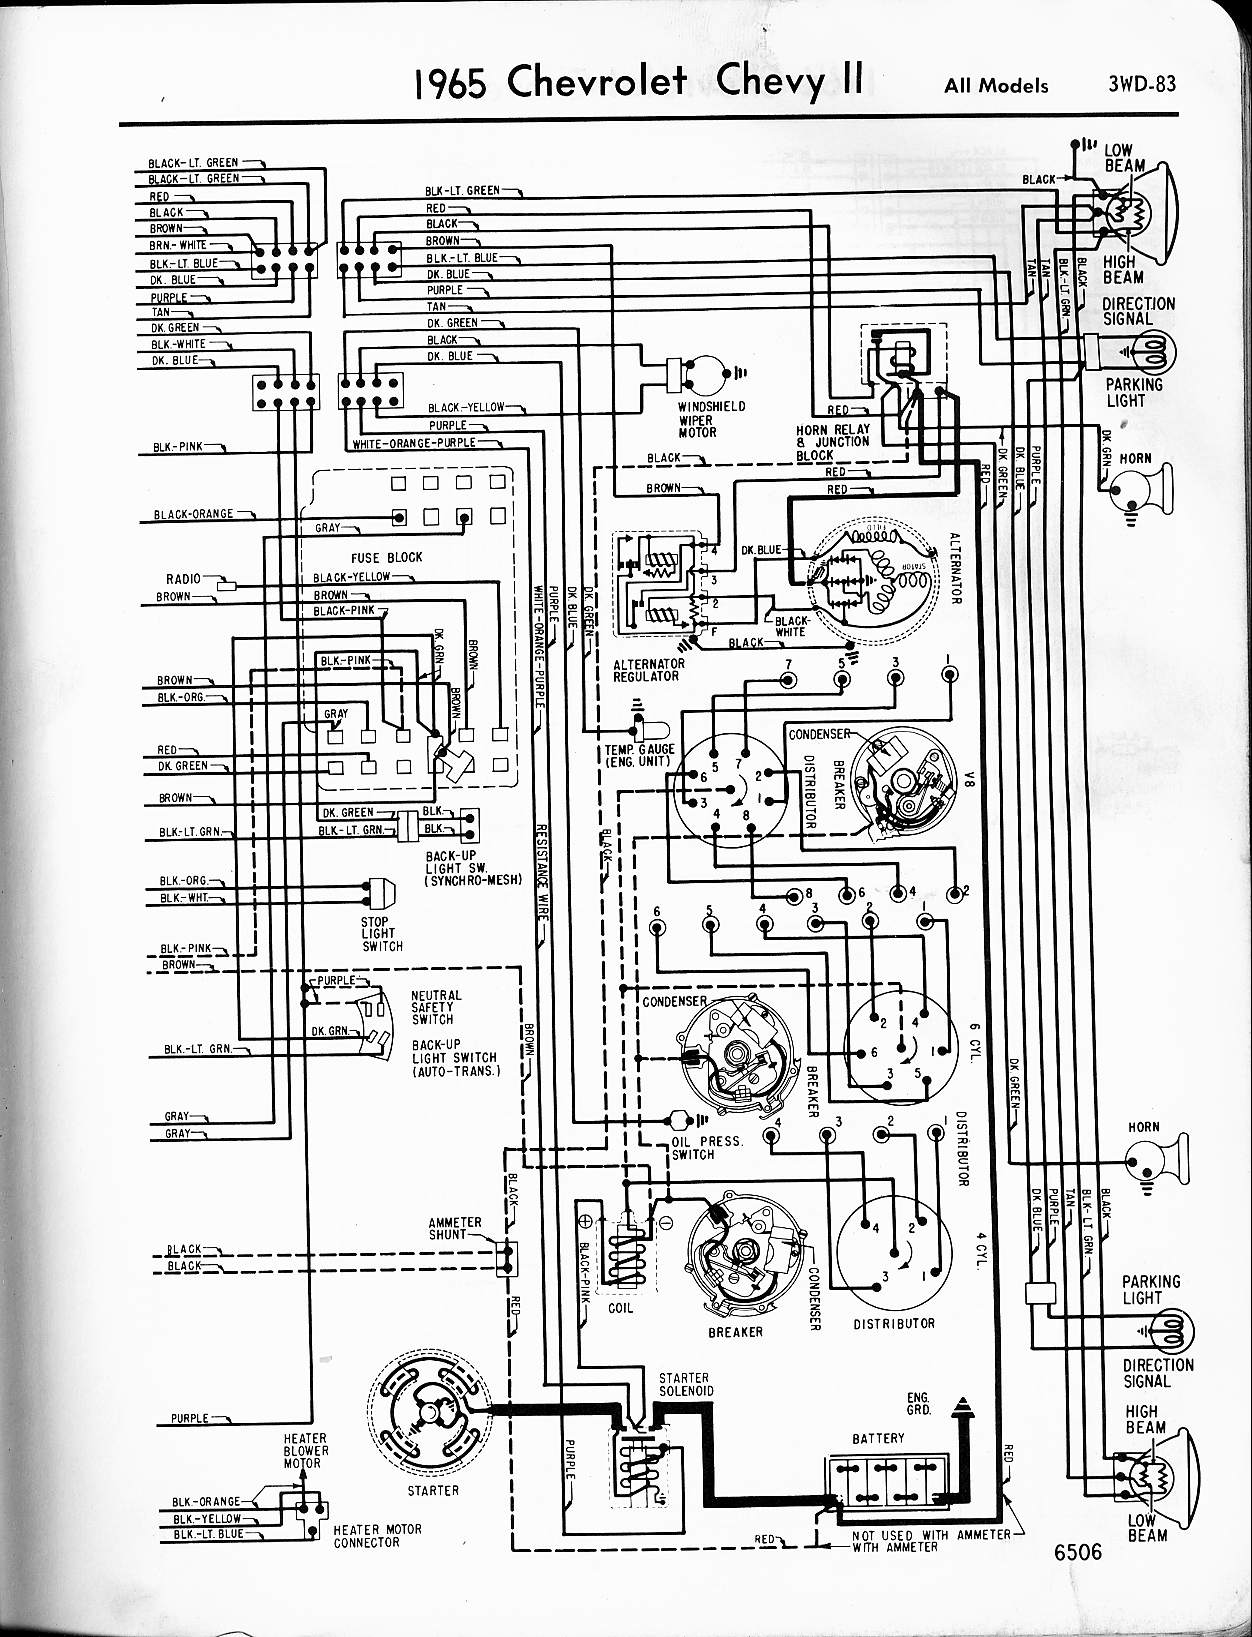 MWireChev65_3WD 083 1969 chevy nova wiring diagram 1969 chevelle engine wiring diagram 1965 Chevelle Wiring Diagram at mifinder.co